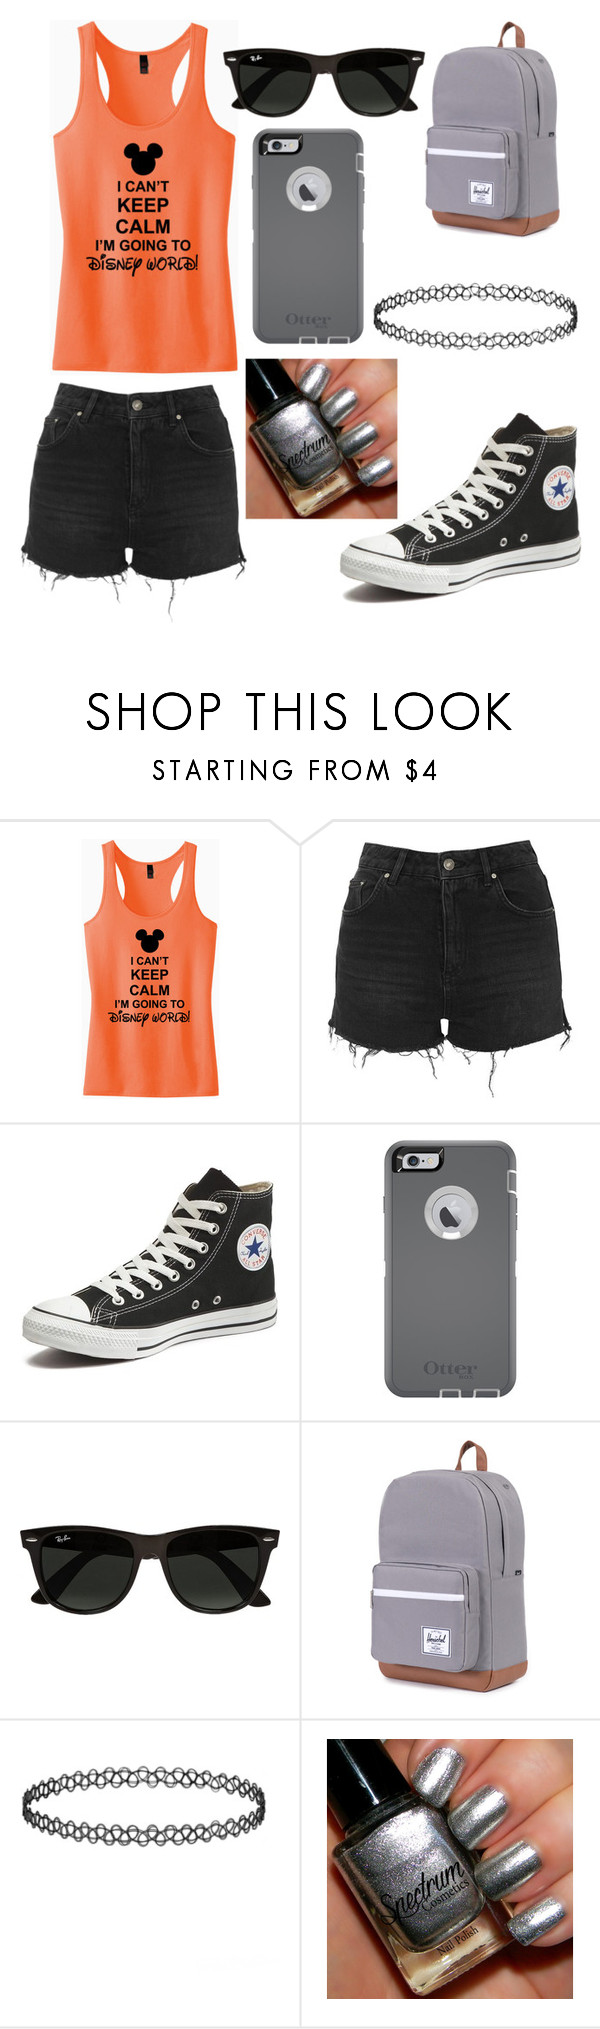 """""""Disney world"""" by sopennydog on Polyvore featuring Topshop, Converse, OtterBox, Ray-Ban, women's clothing, women, female, woman, misses and juniors"""